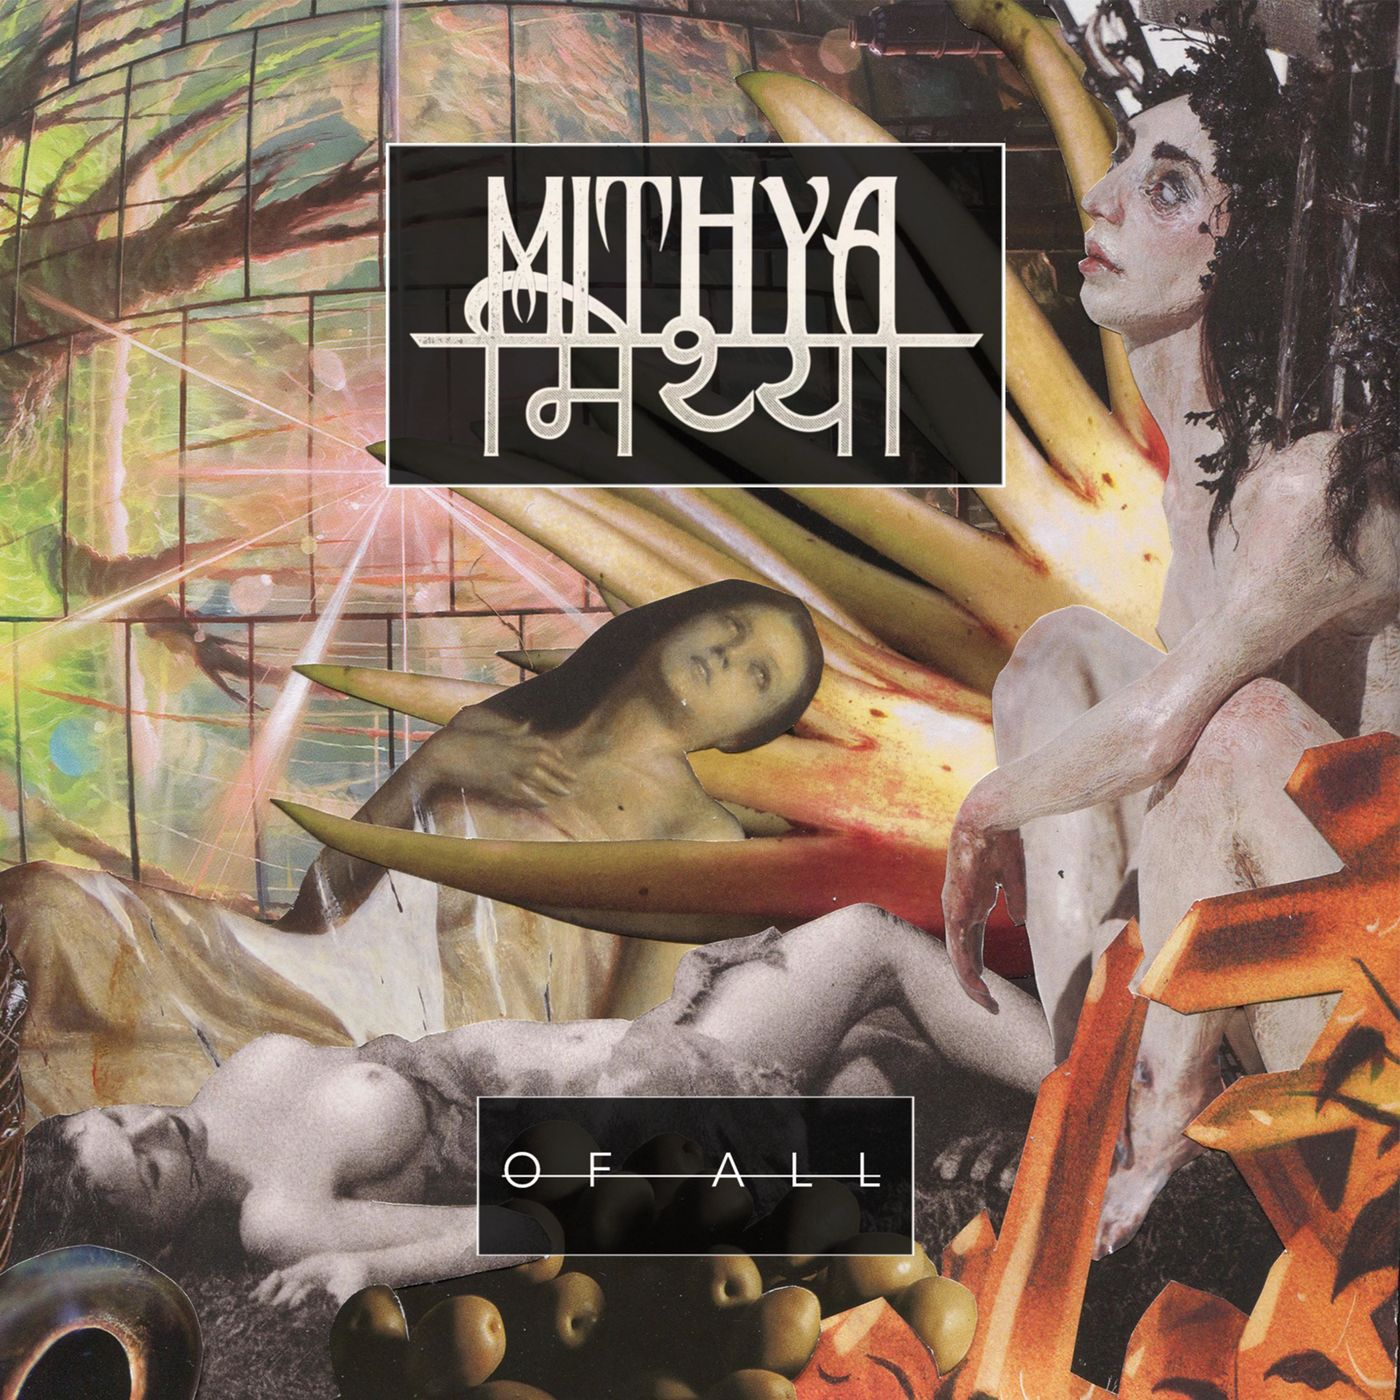 Mithya - Of All [EP] (2019)